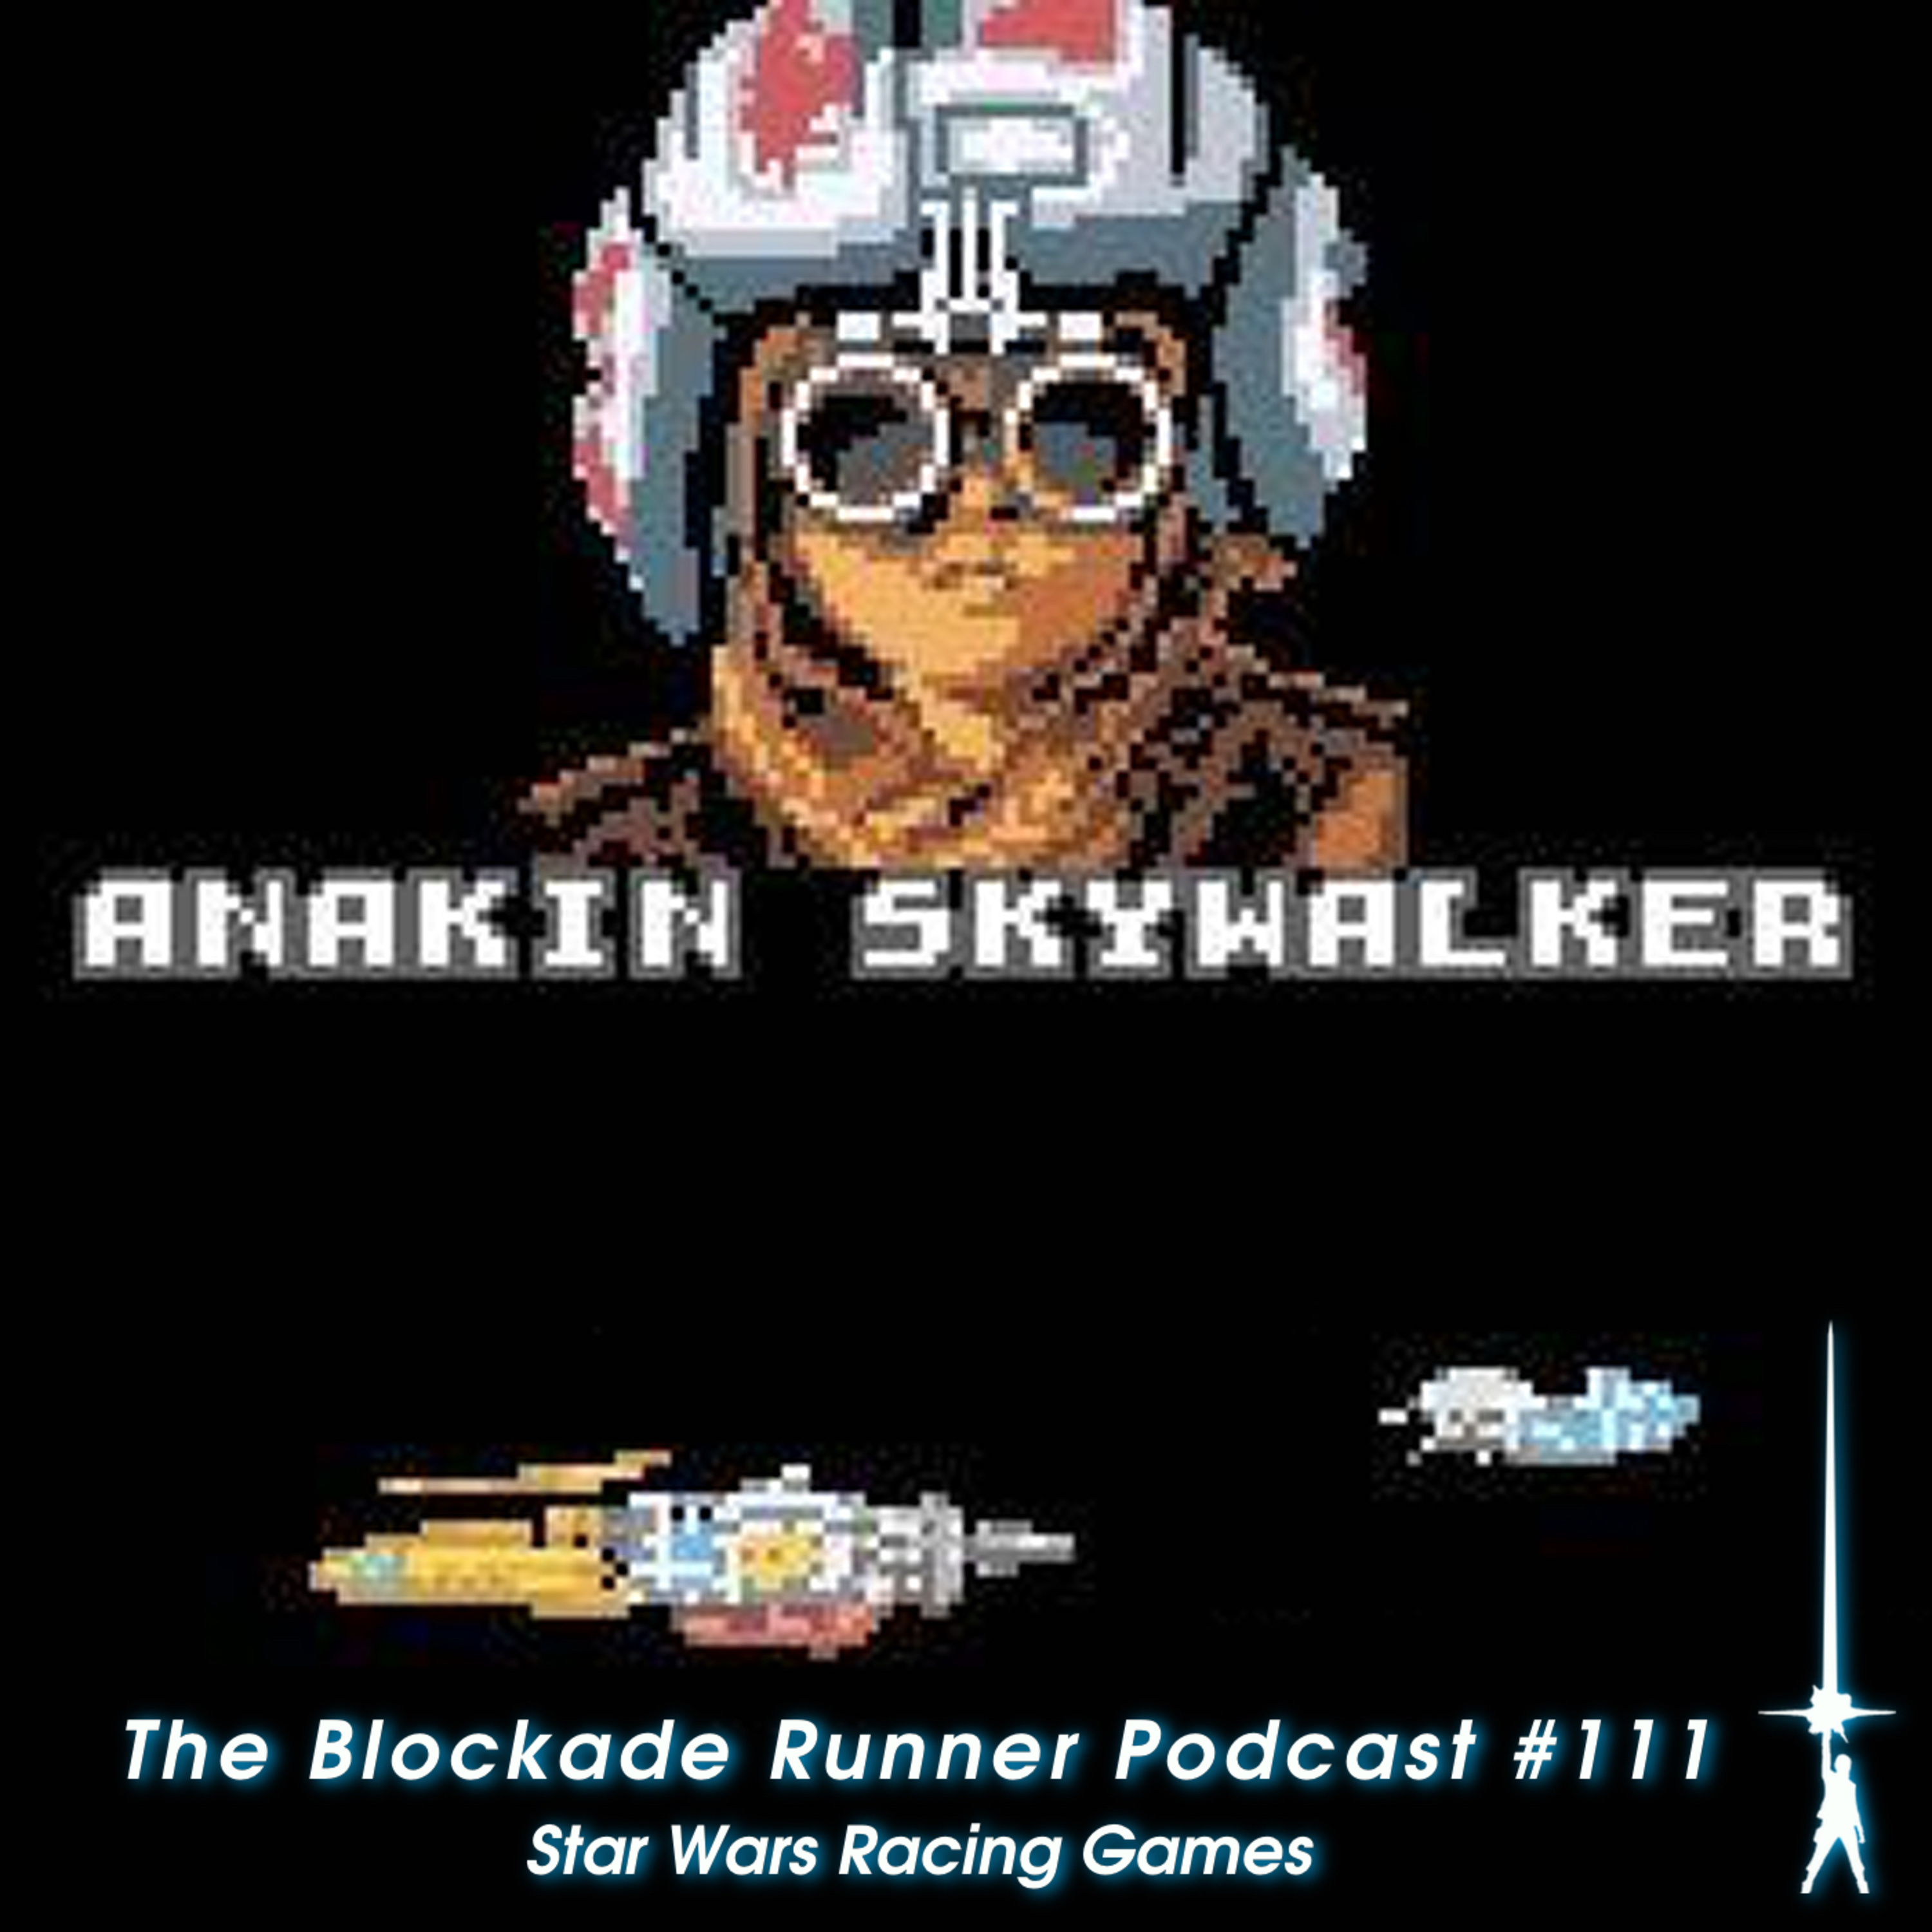 Star Wars Racing Games - The Blockade Runner Podcast #111